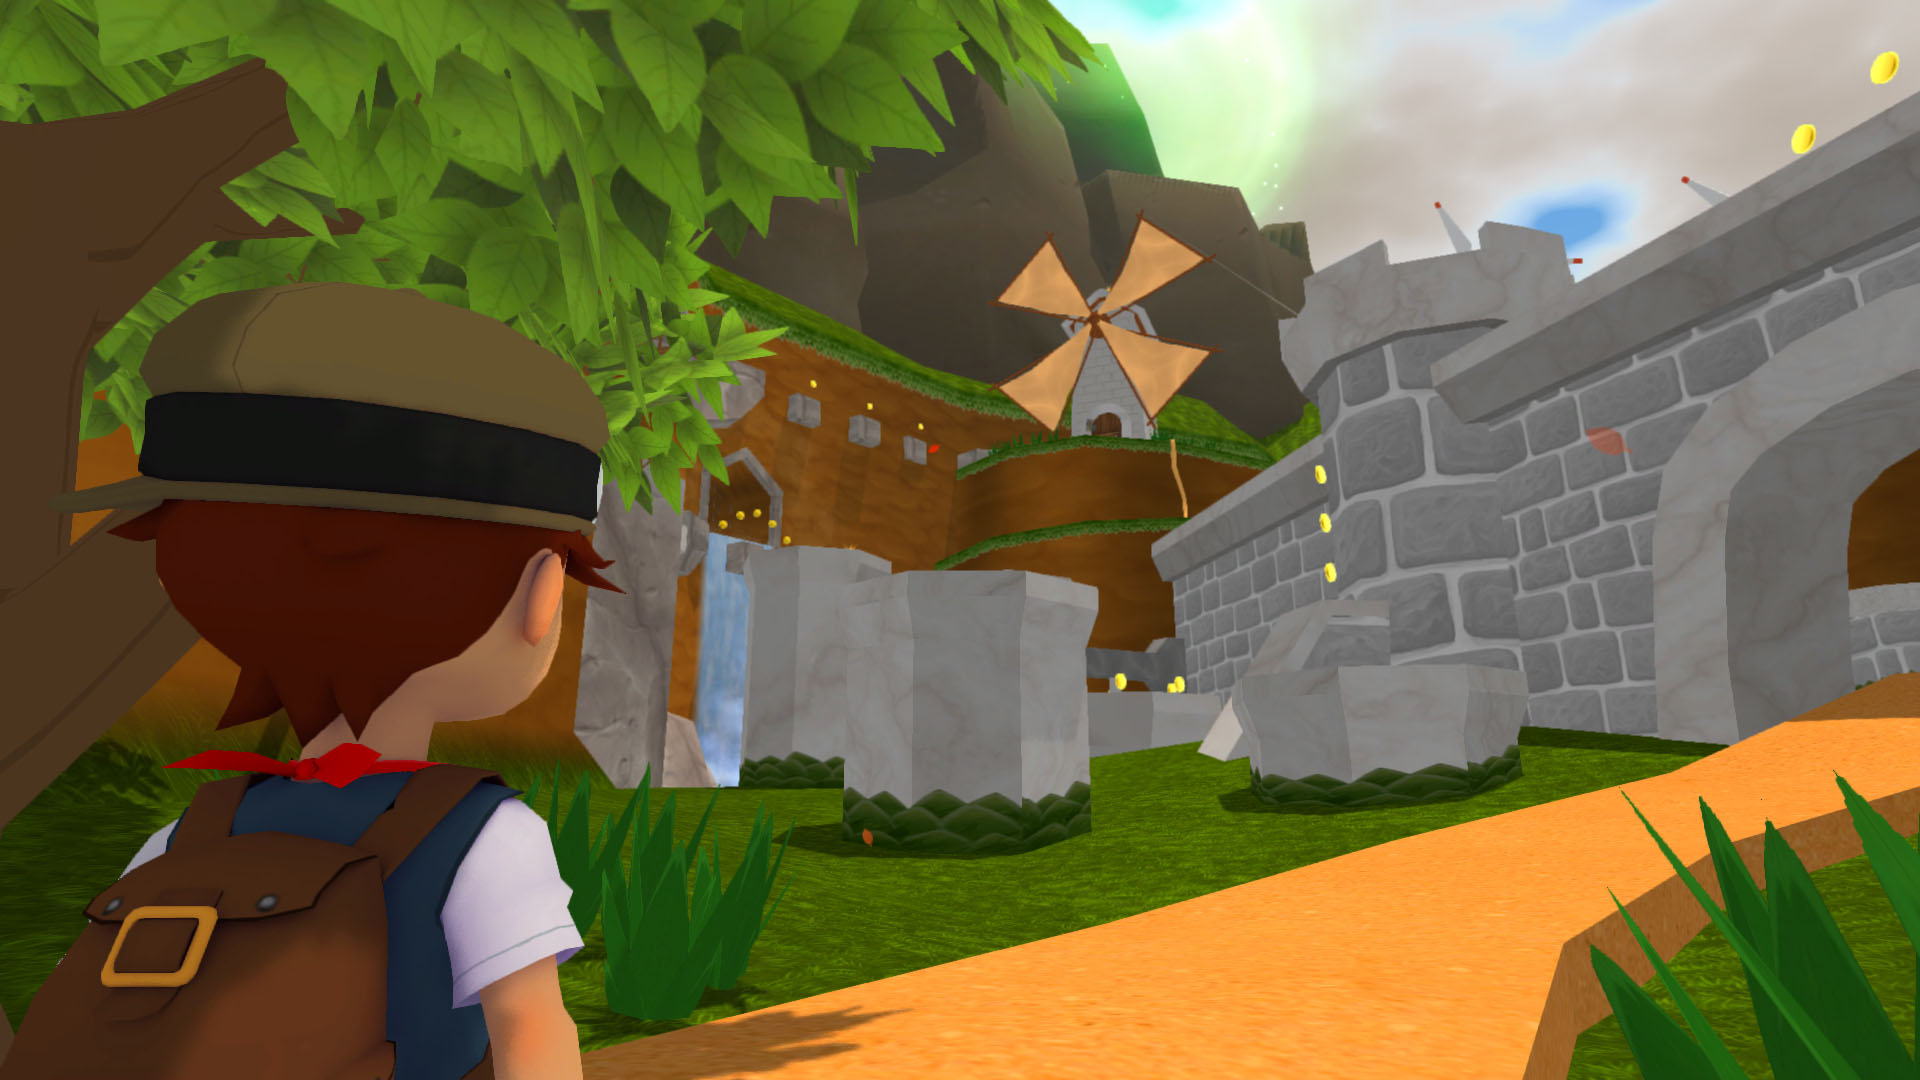 3D platformer Poi in the works for Wii U - Nintendo Everything